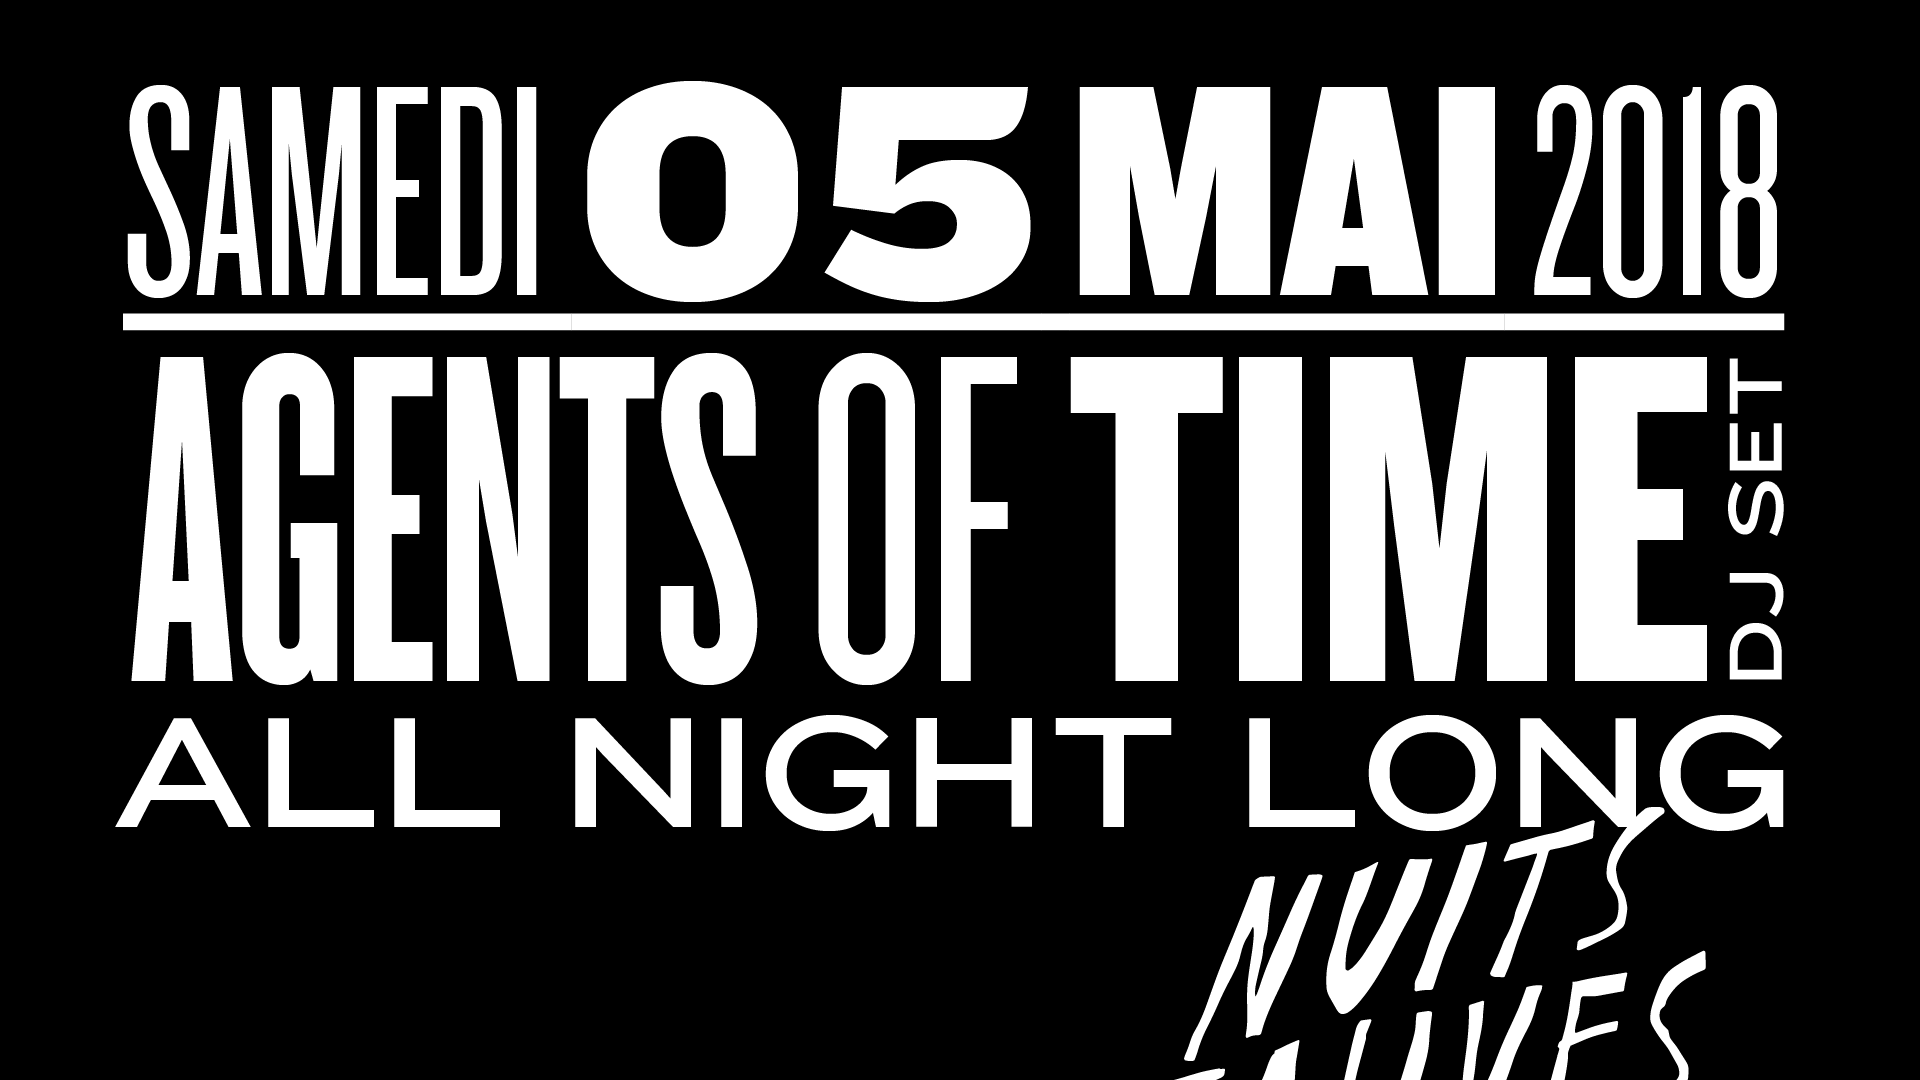 Agents Of Time (dj set) - ALL NIGHT LONG